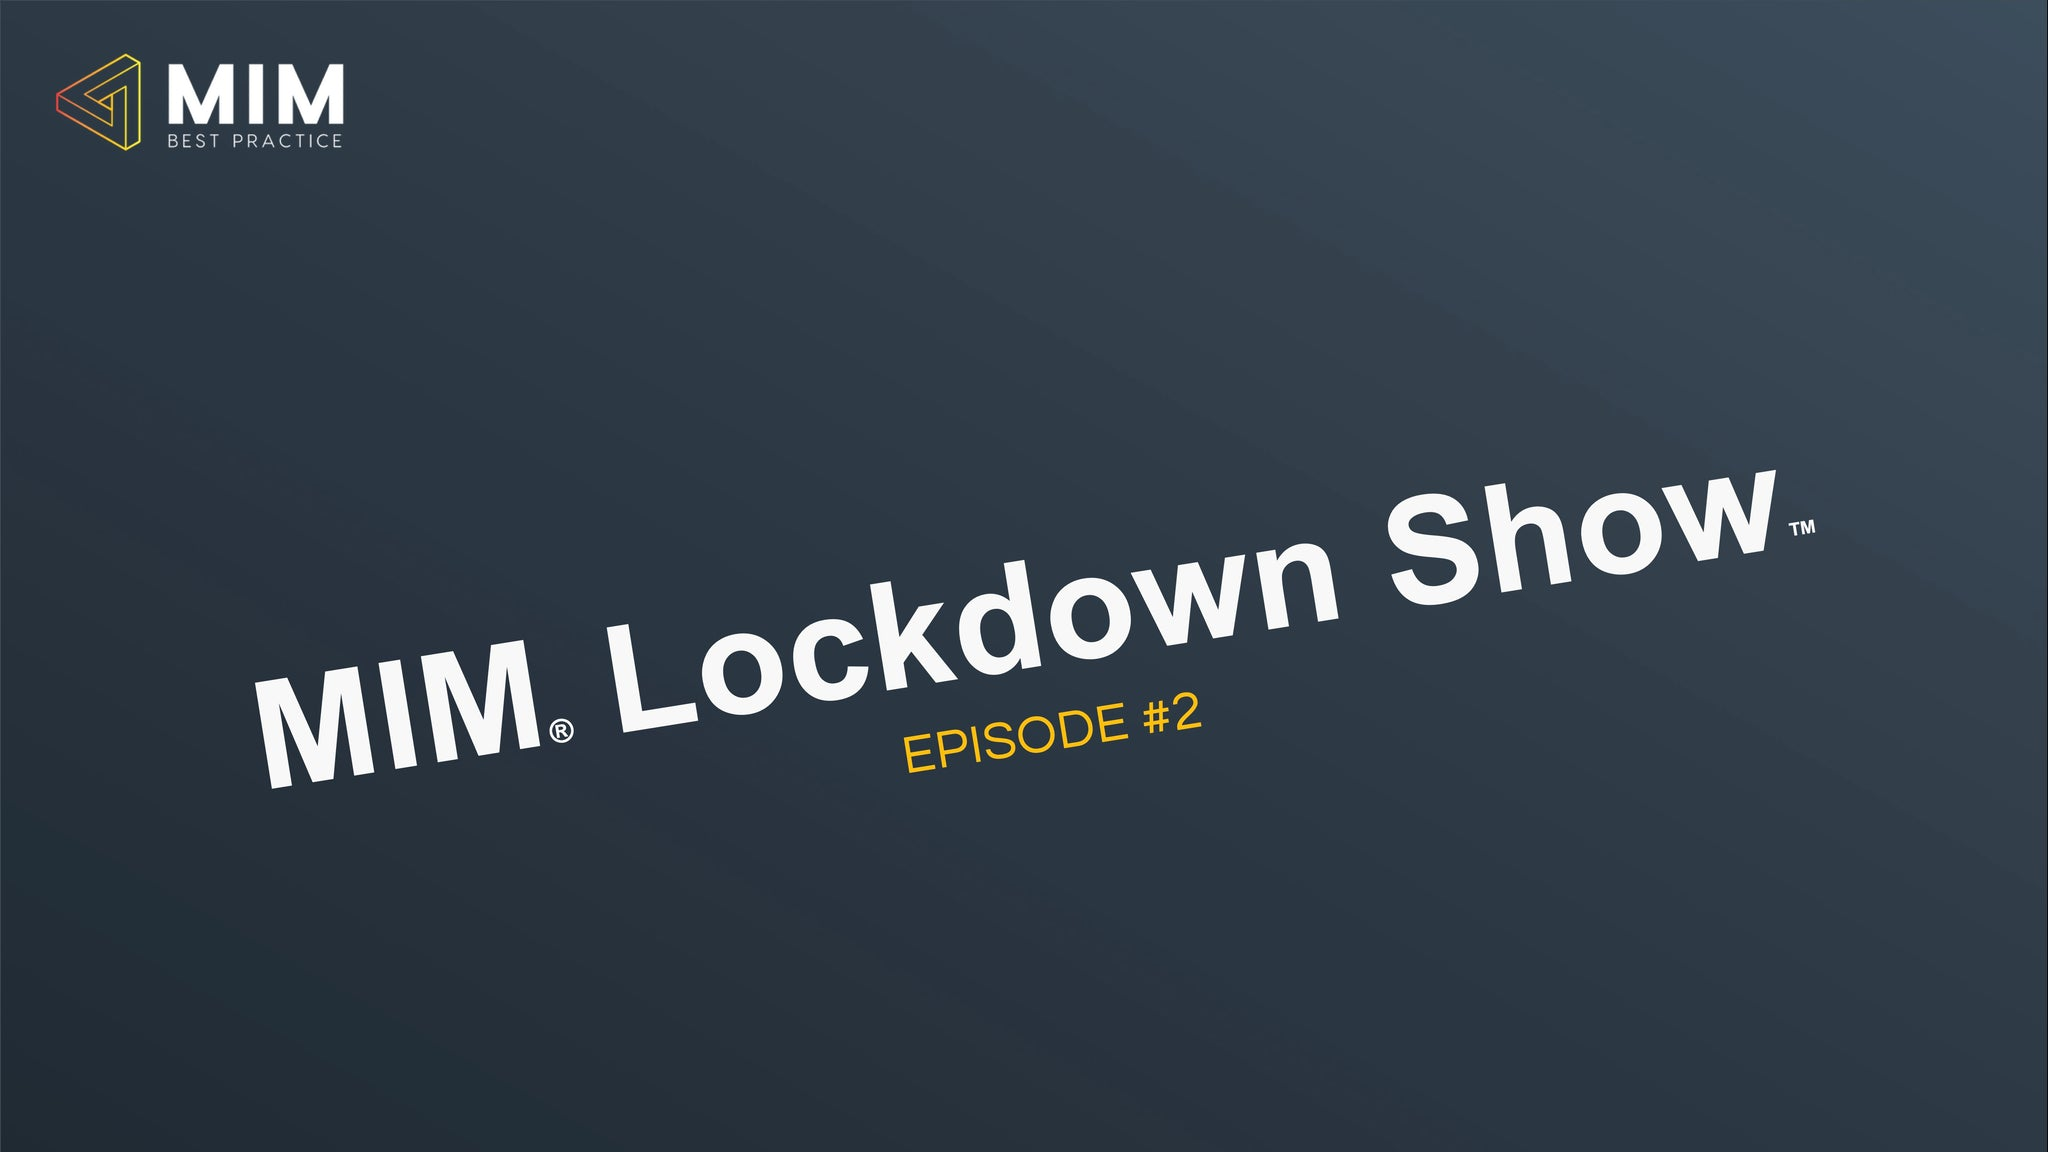 MIM Lockdown Show Episode 2: The emotional bank account